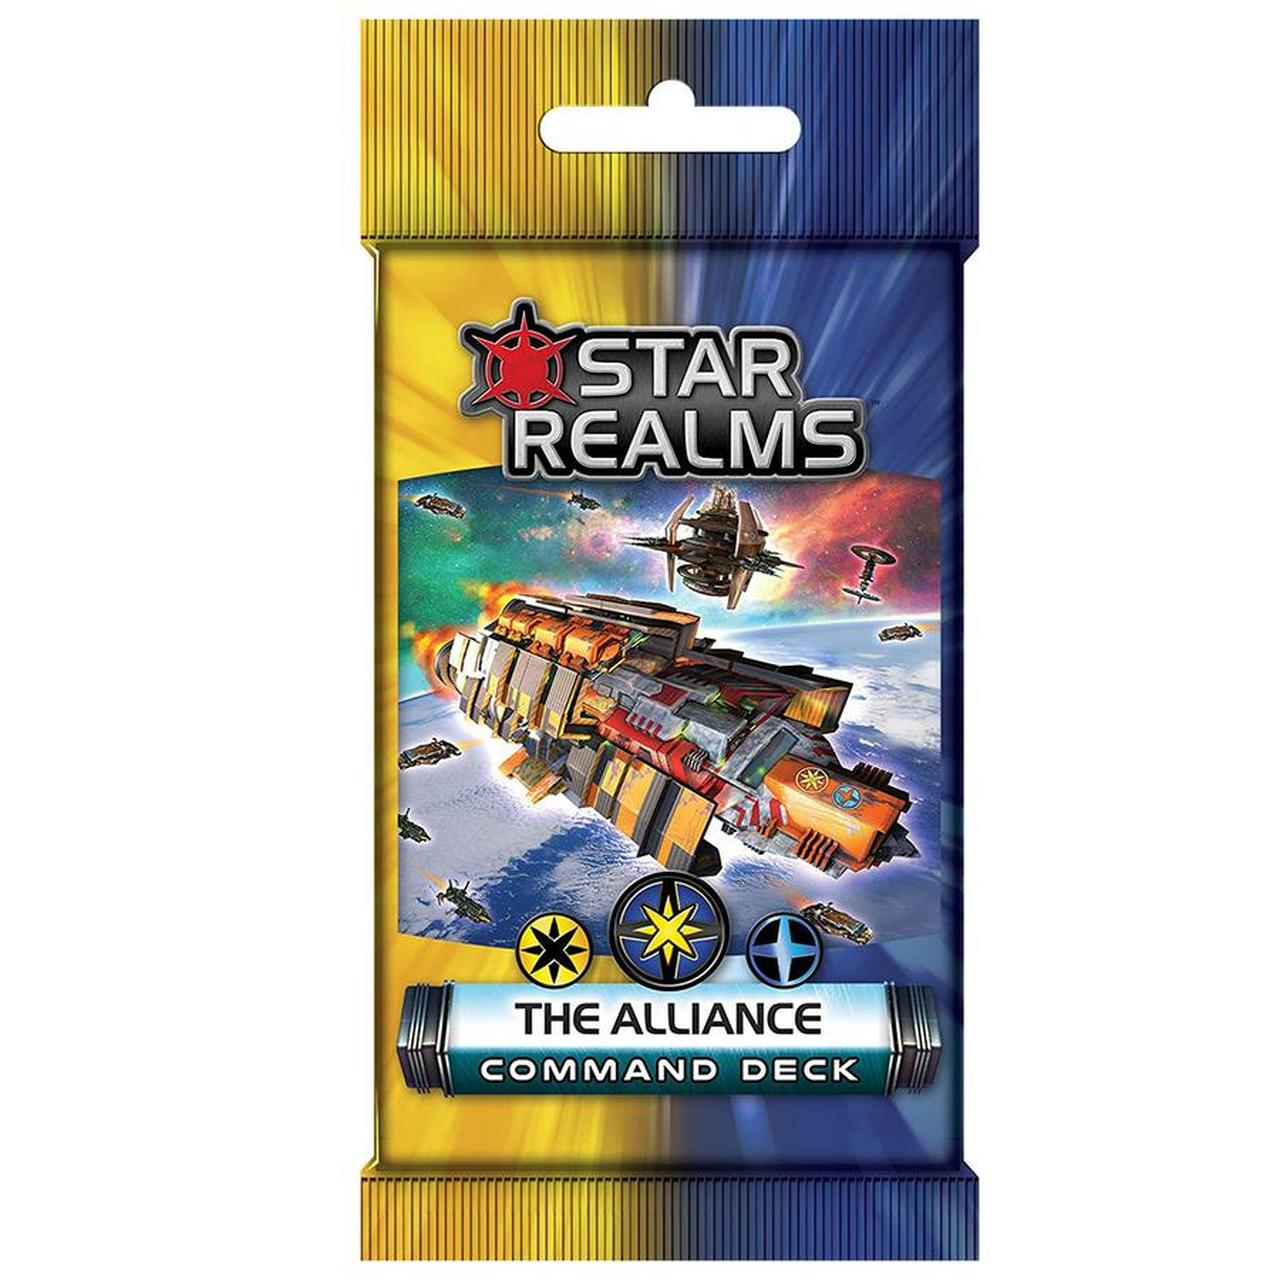 Star Realms - Command Deck (The Alliance)